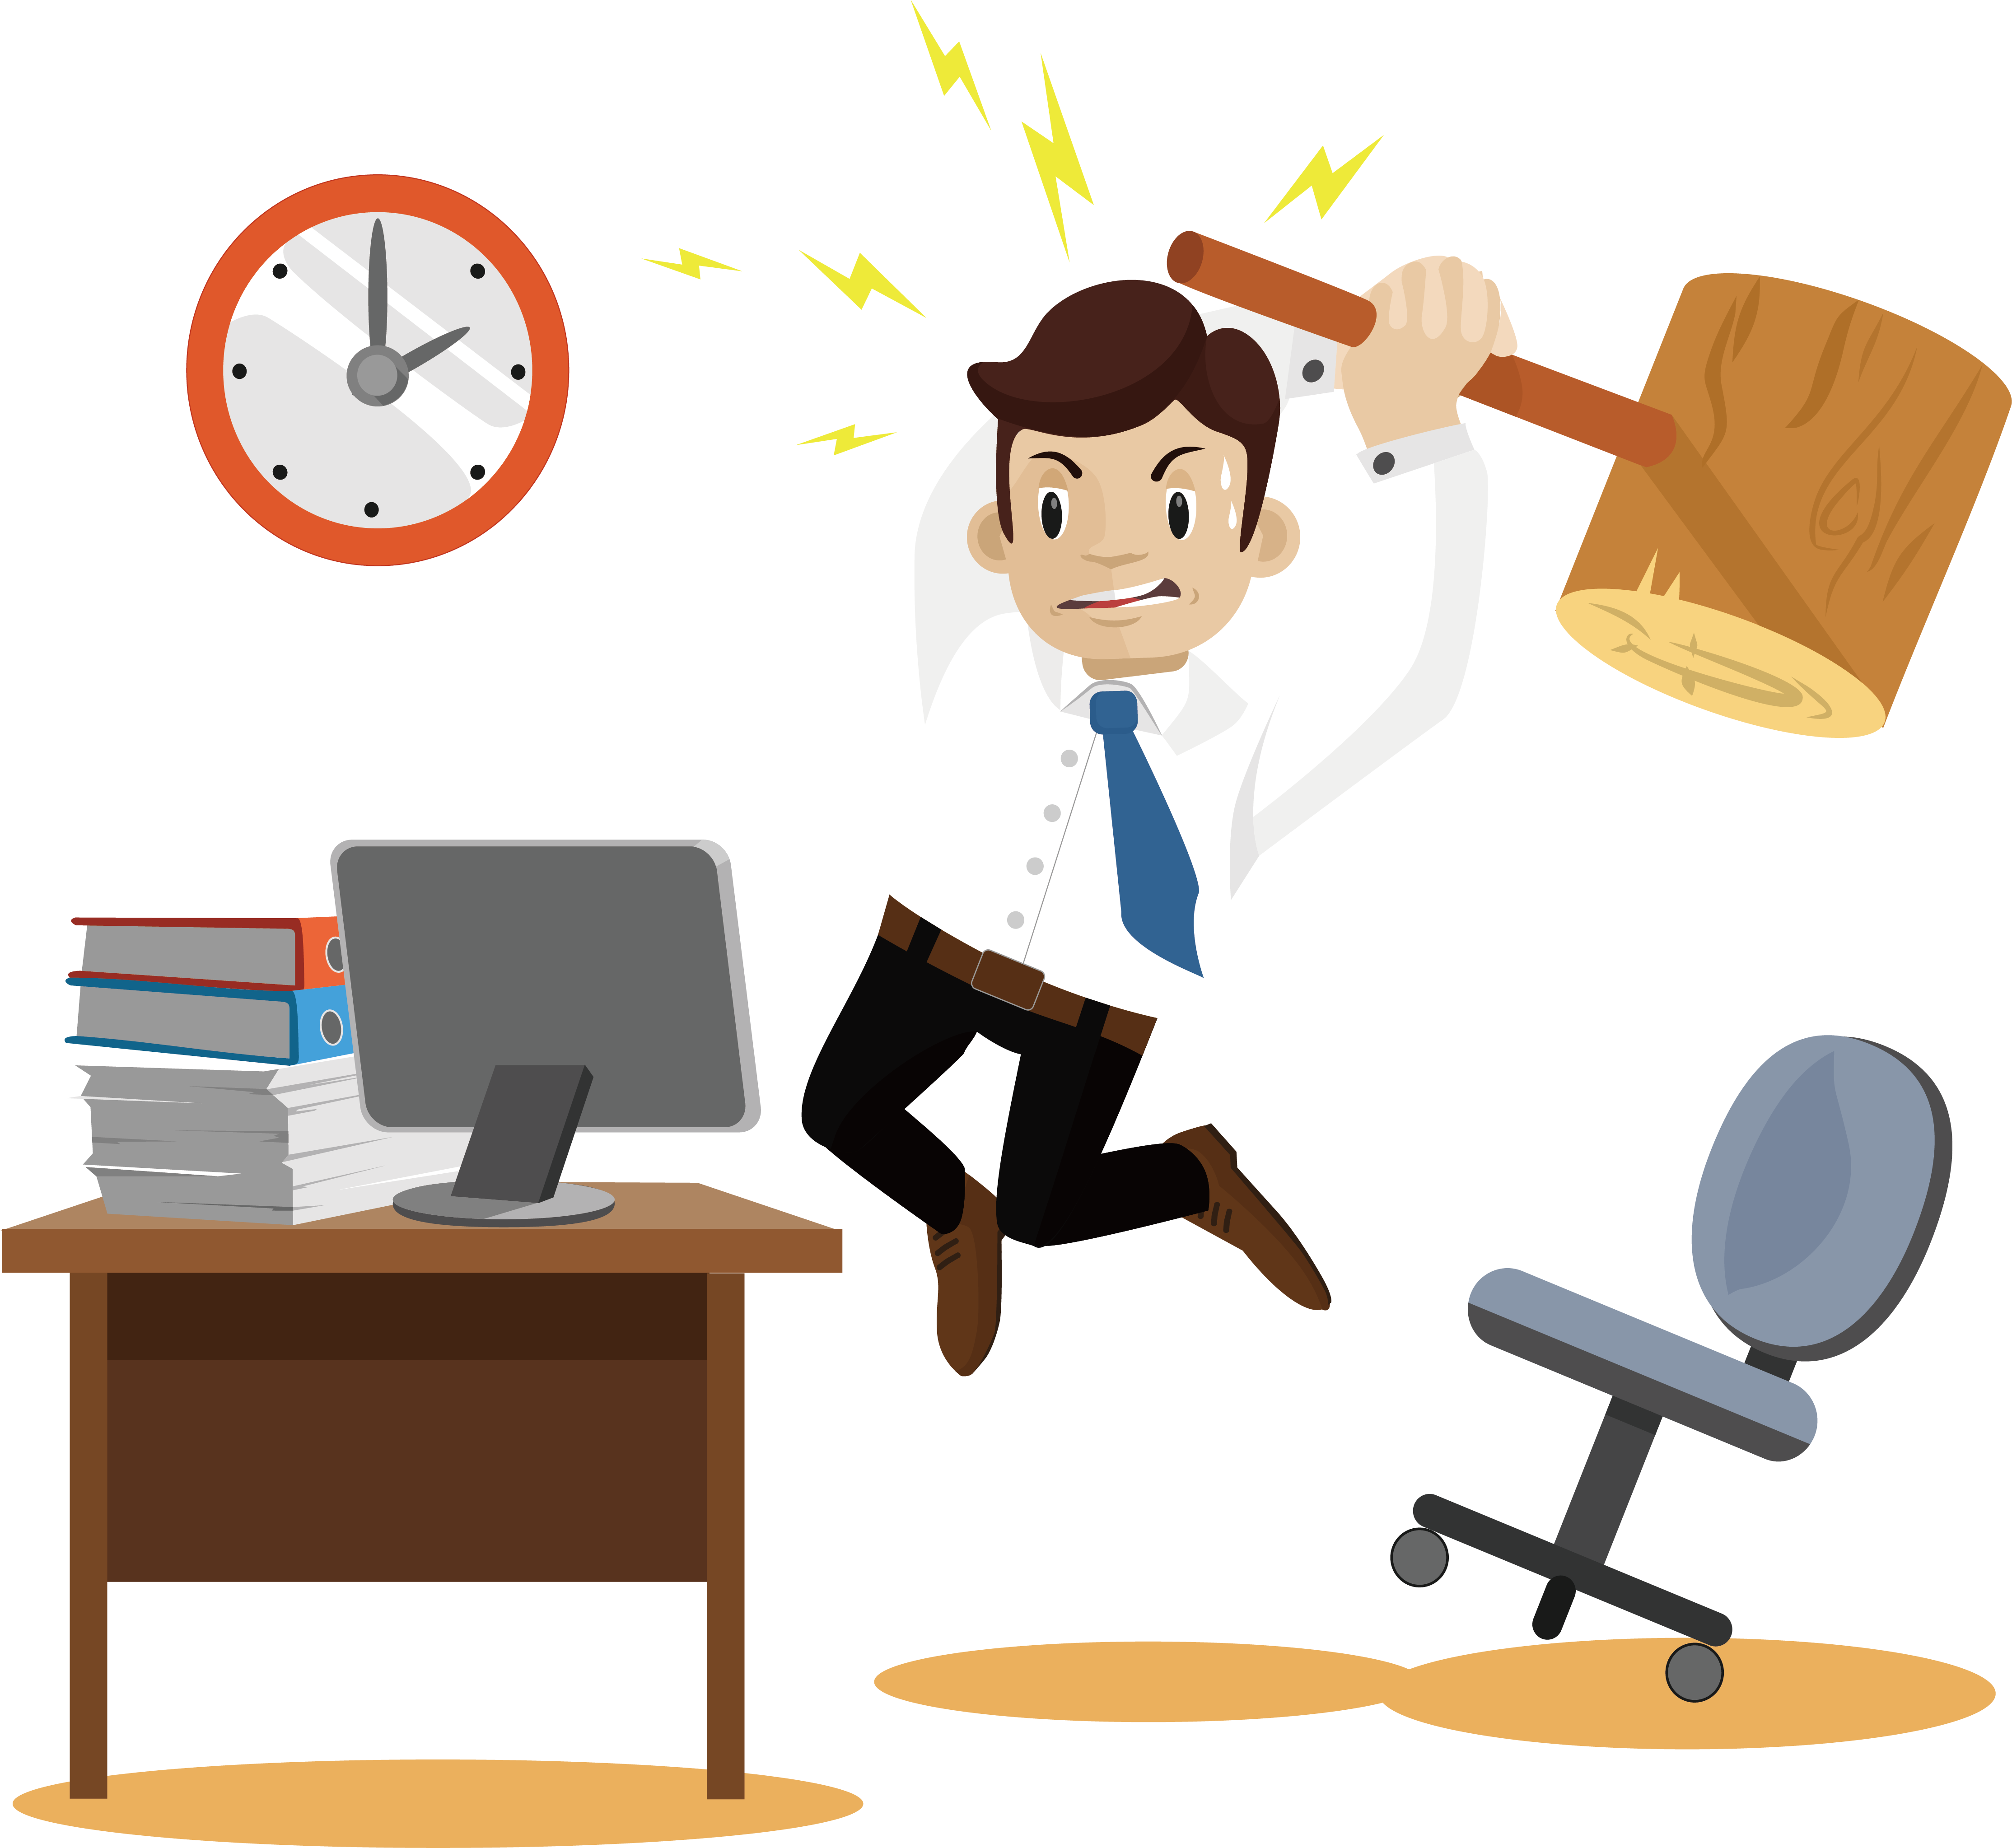 Businessperson anger illustration an. Coconut clipart angry